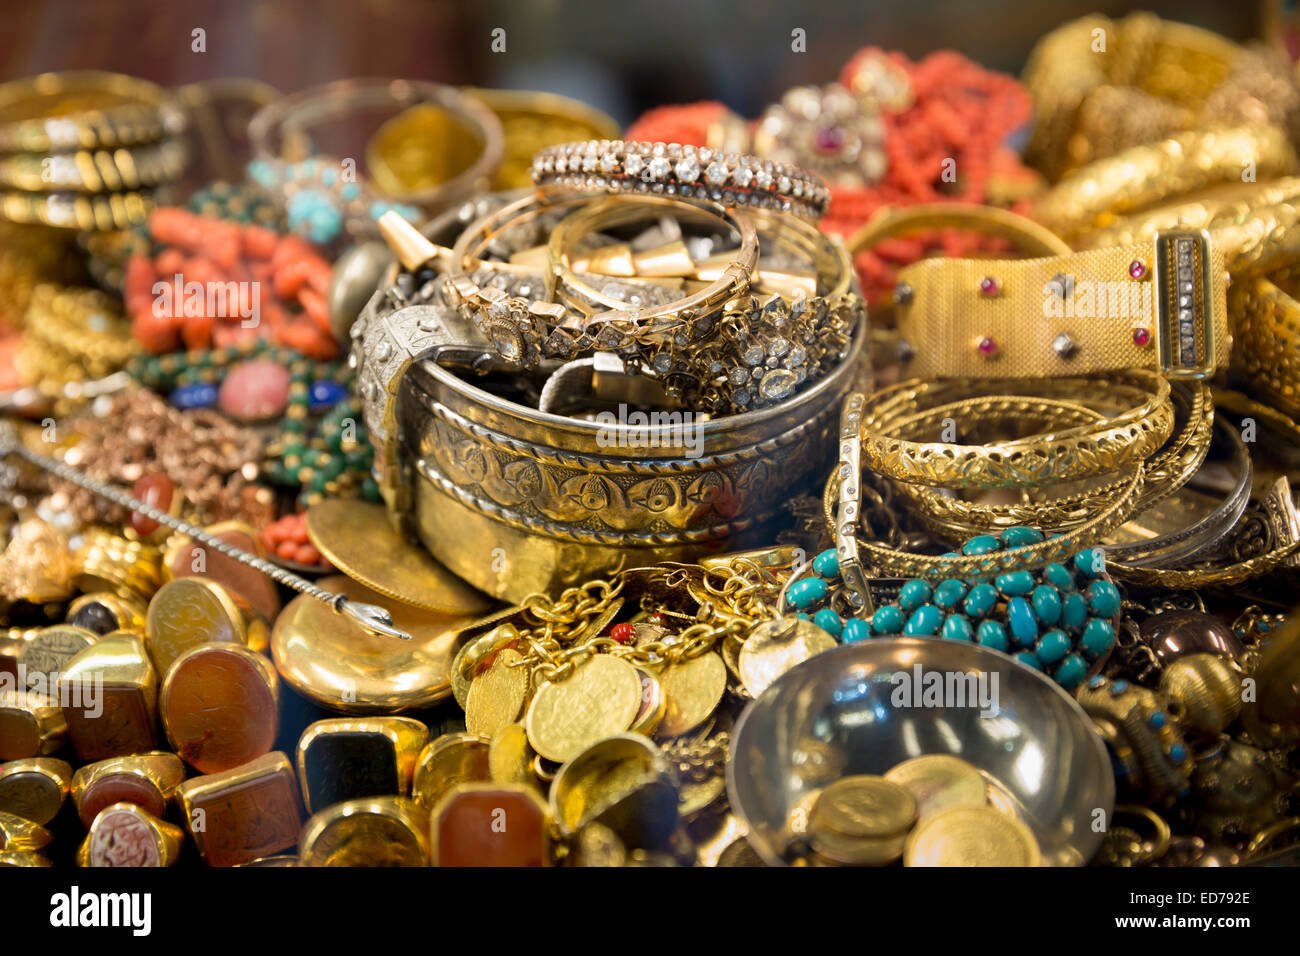 Gold jewelry rings bracelets bangles beads in The Grand Bazaar, Kapalicarsi, great market,  Beyazi, Istanbul, Turkey - Stock Image